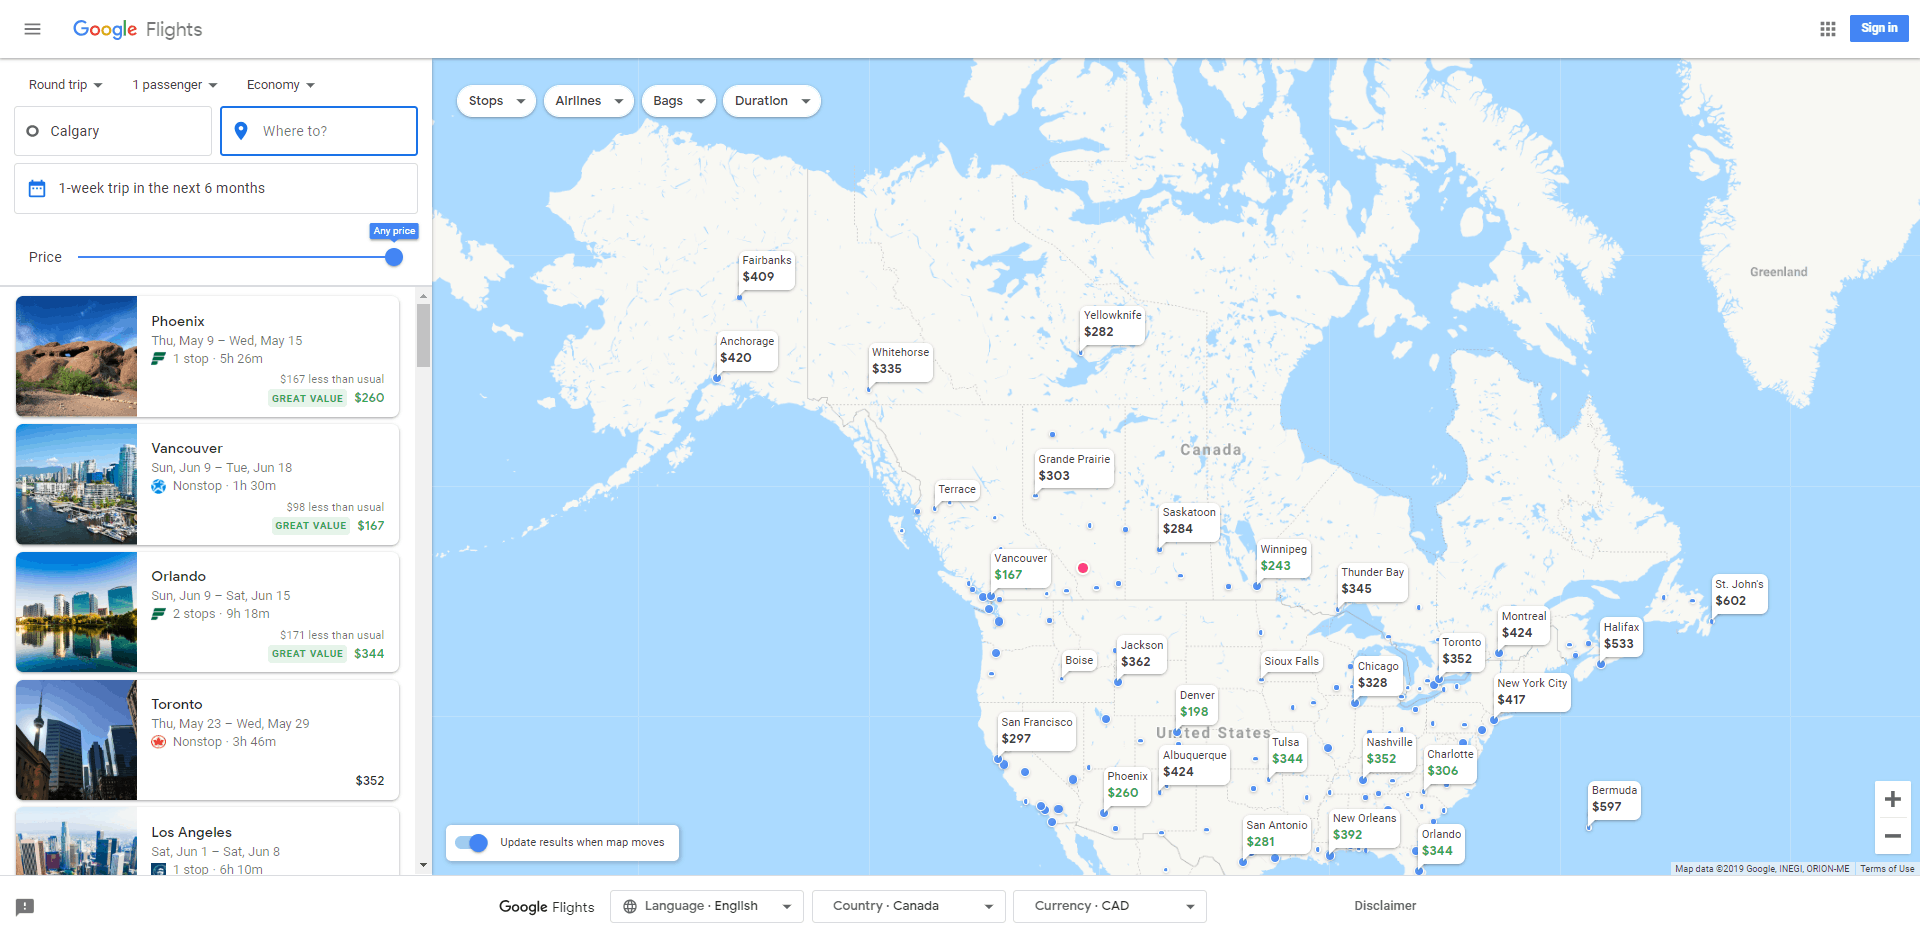 3. The Explore Map